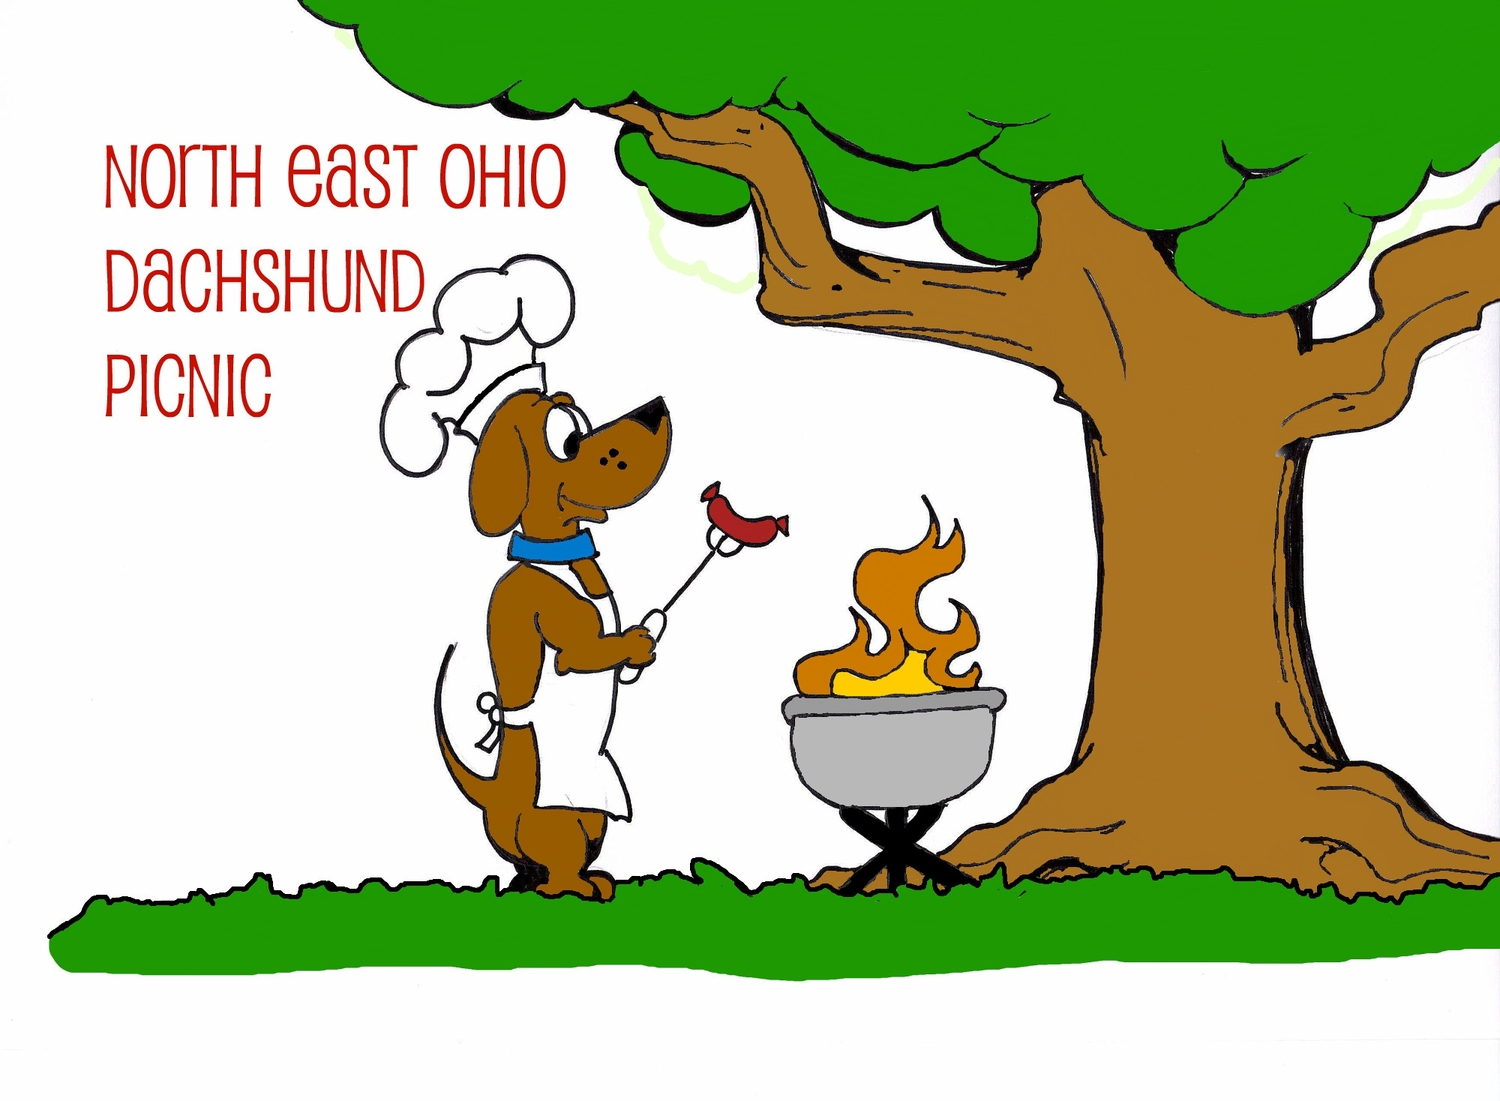 North East Ohio Dachshund Picnic